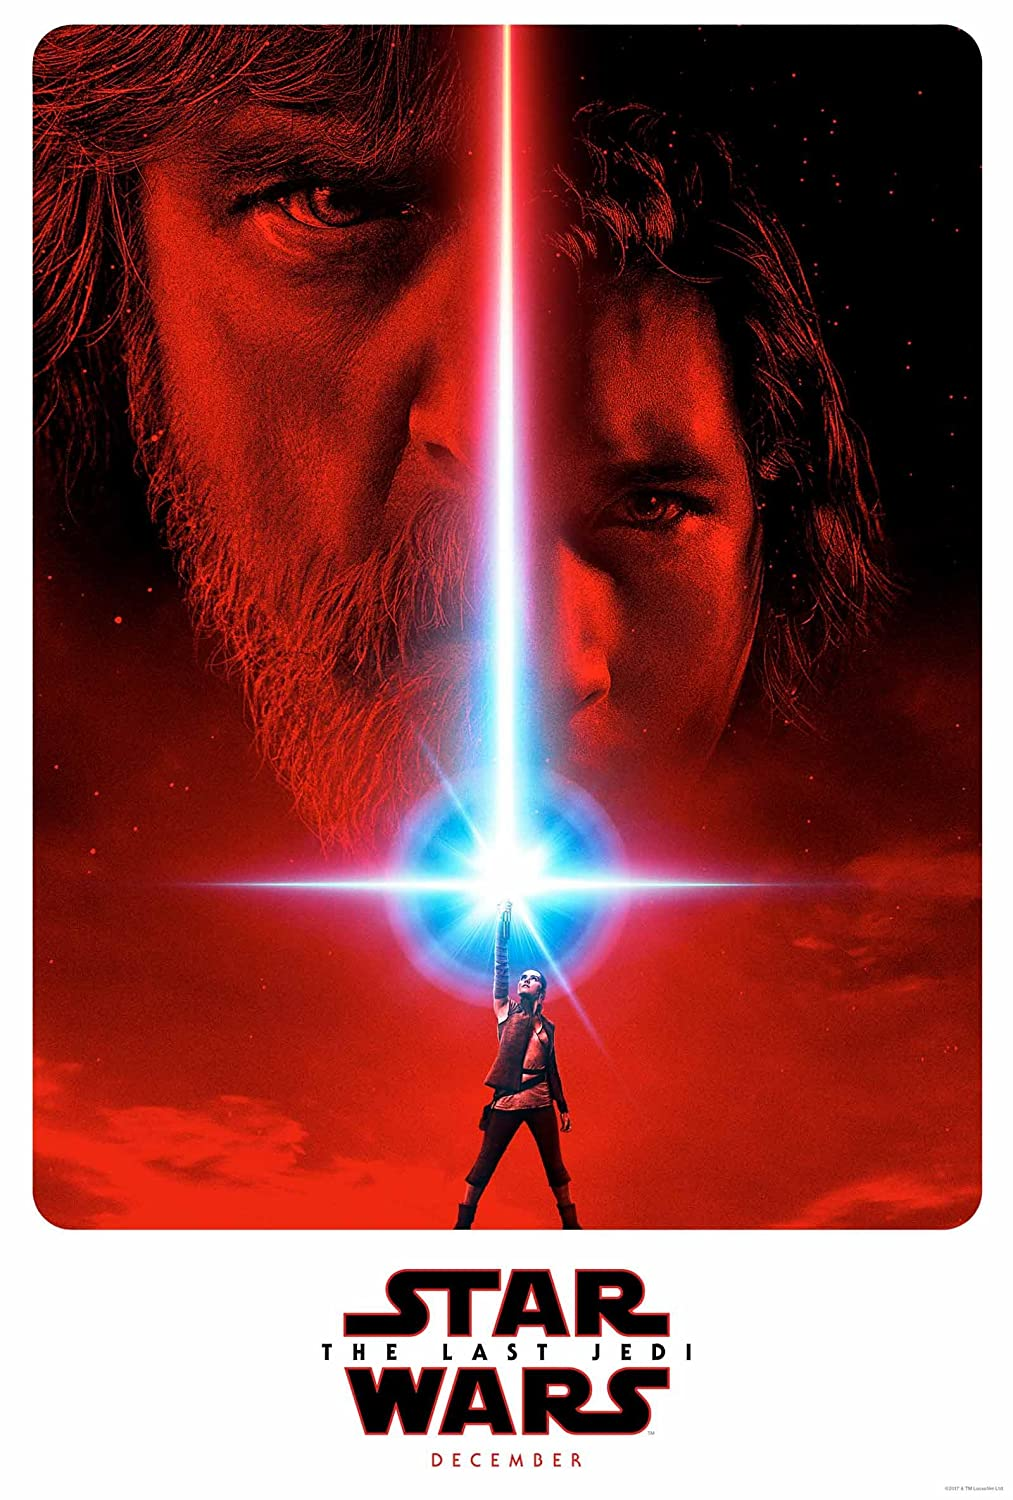 Star Wars The Last Jedi Teaser Movie Poster 24x36 Inch